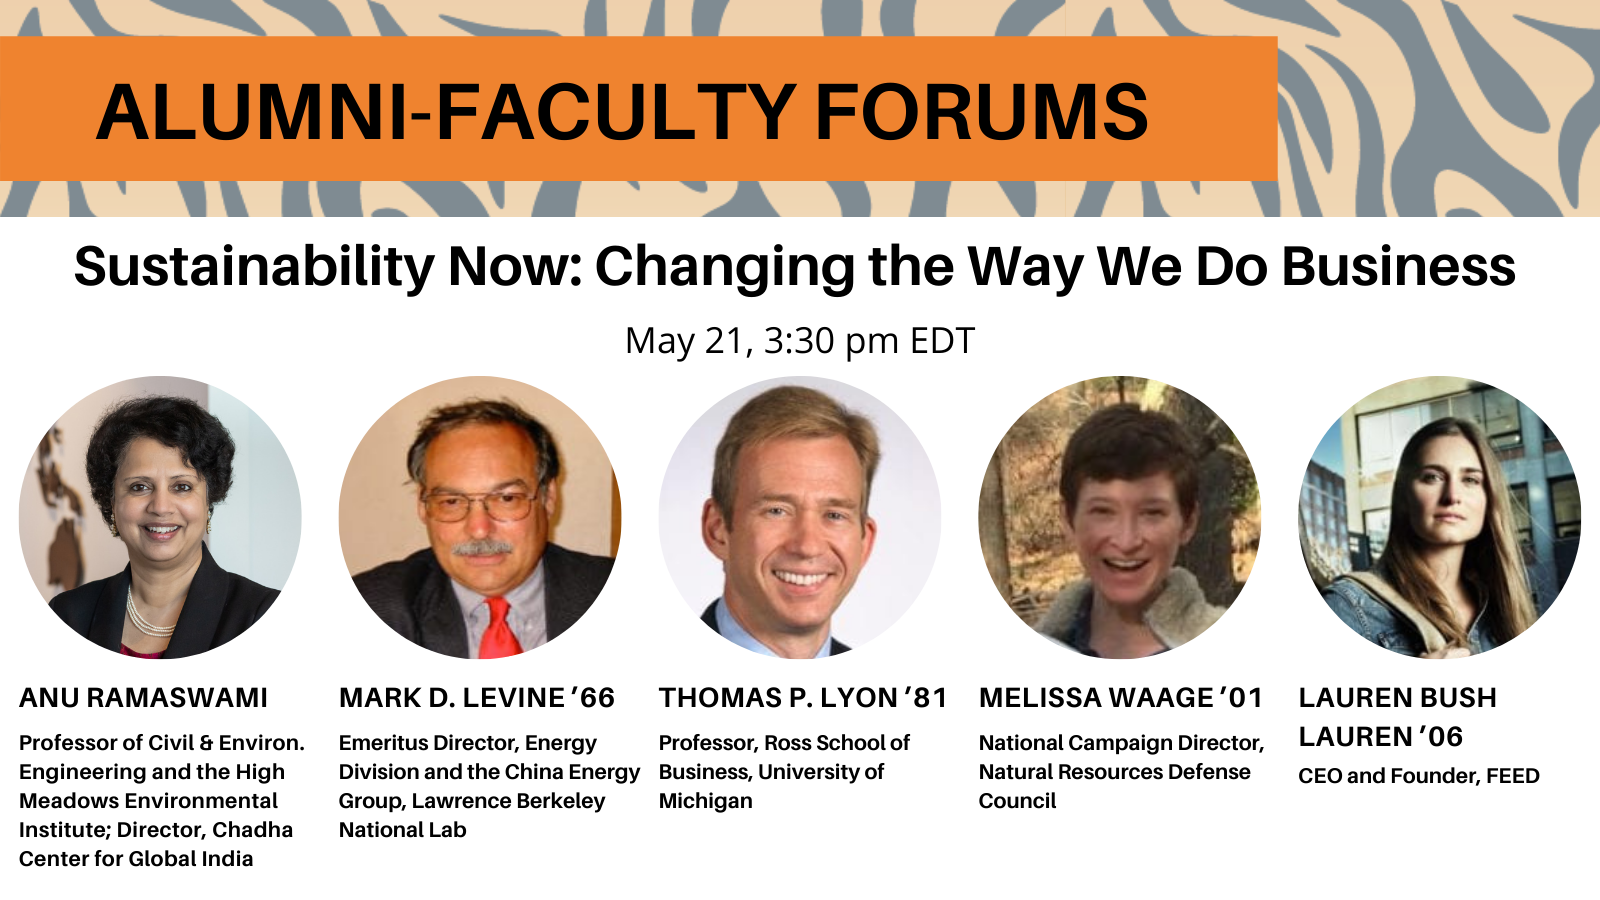 Alumni Faculty Forums: Sustainability Now, May 21, 3:30 pm EDT. Photos and titles of speakers also listed below